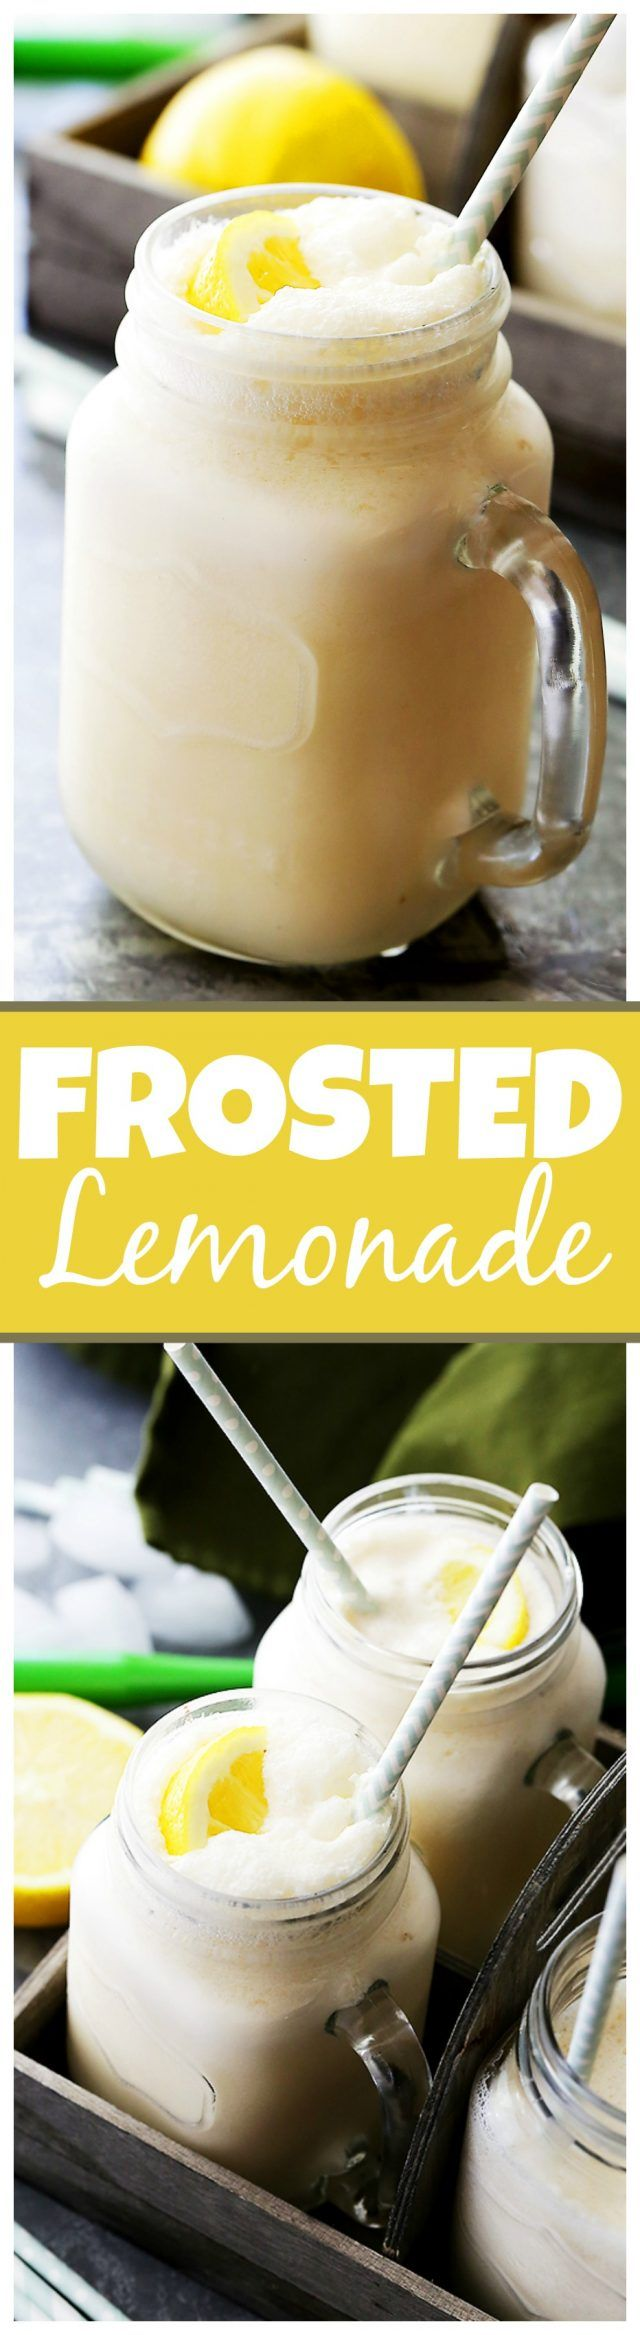 Frosted Lemonade Recipe - Easy, delicious and refreshing two-ingredient Chick-fil-A Frosted Lemonade copycat made with lemonade and…